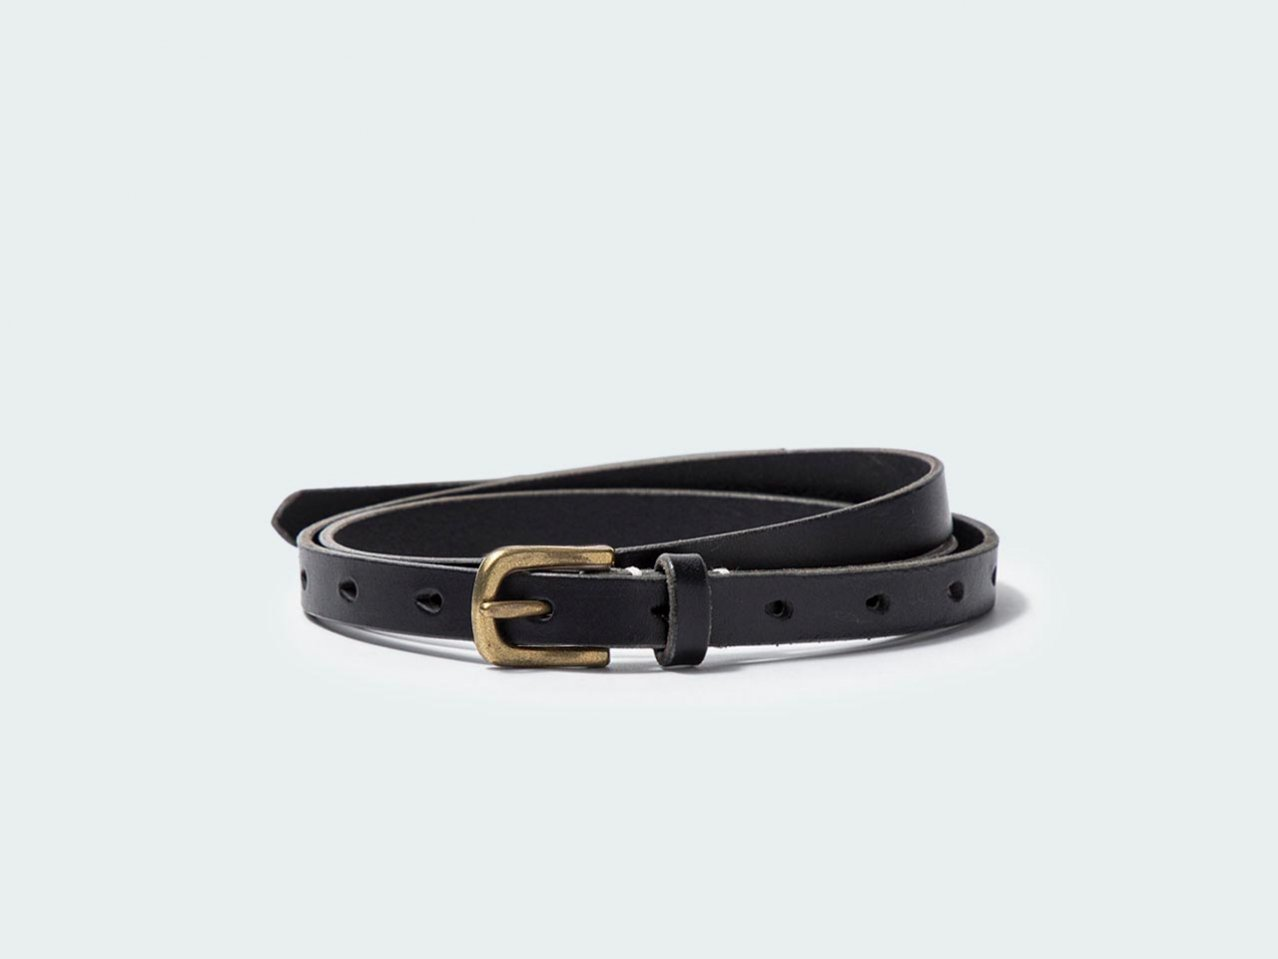 NARROW STANDARD BELT 15 / BLACK